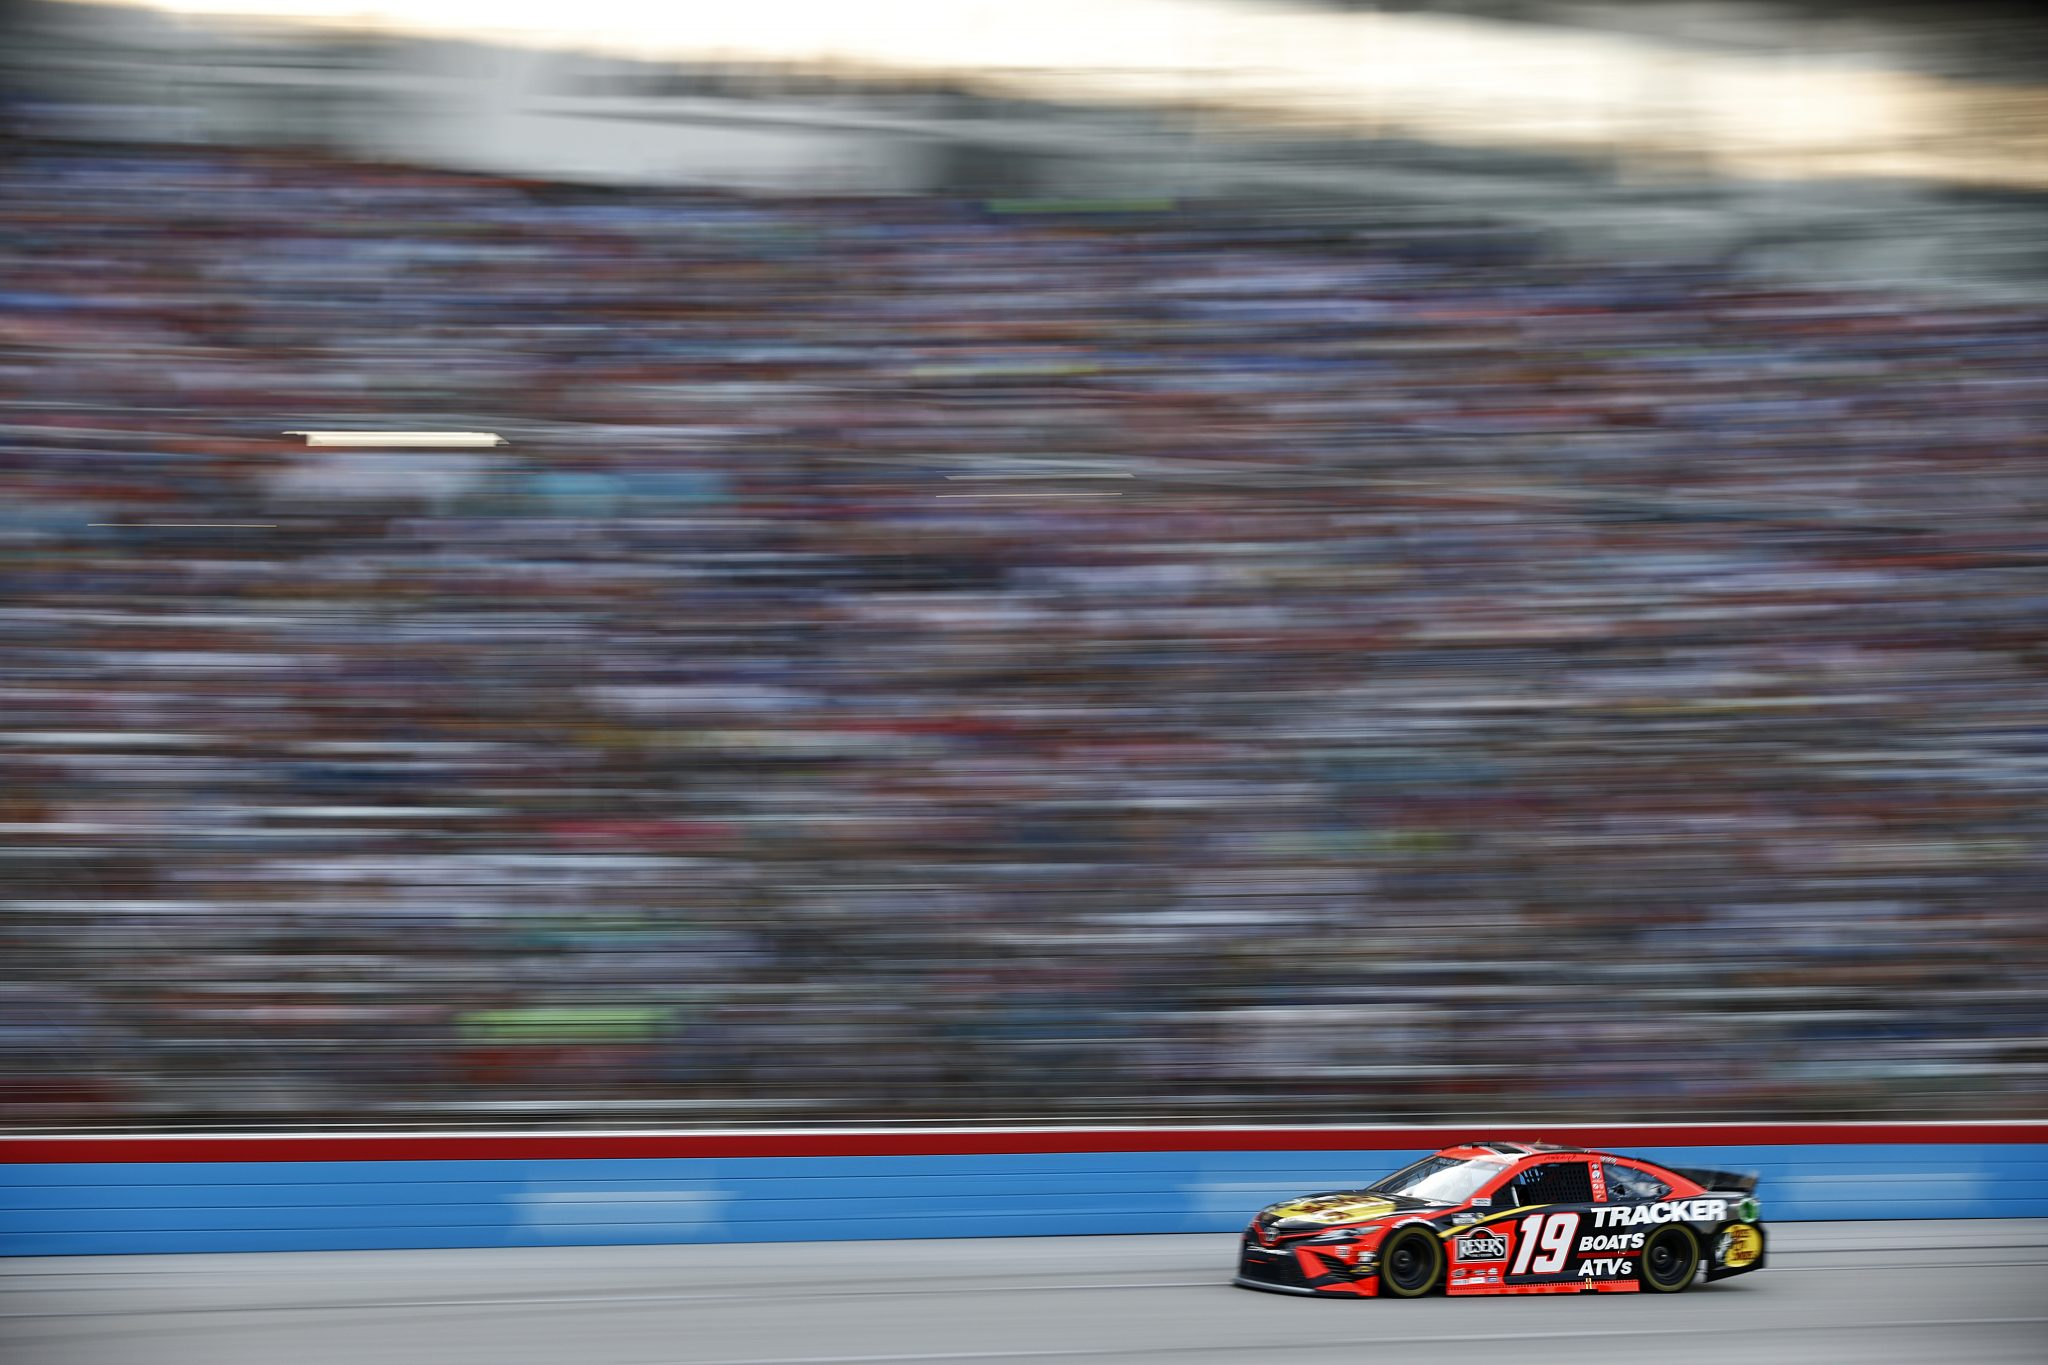 FORT WORTH, TEXAS - JUNE 13: Martin Truex Jr., driver of the #19 Bass Pro Toyota, drives during the NASCAR All-Star Race at Texas Motor Speedway on June 13, 2021 in Fort Worth, Texas. (Photo by Jared C. Tilton/Getty Images) | Getty Images